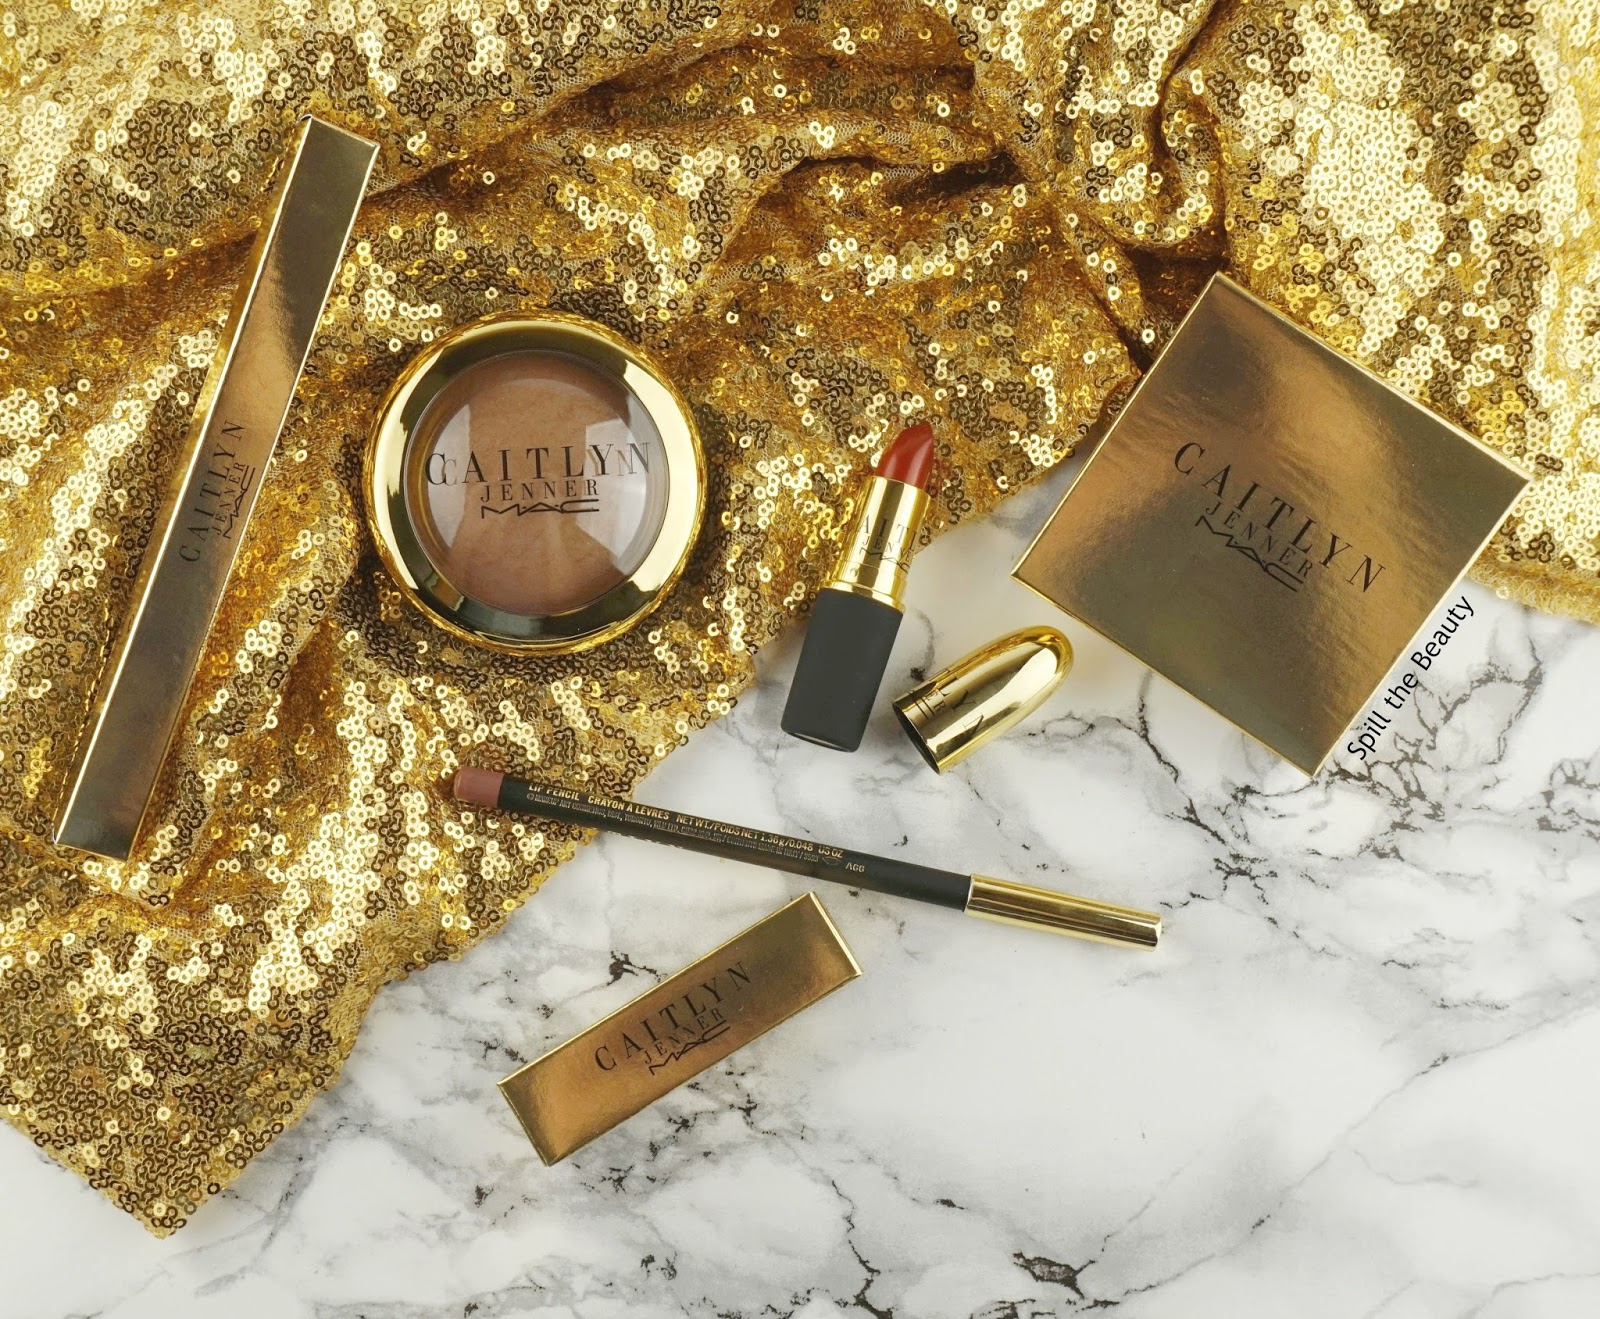 MAC Caitlyn Jenner – Review, Swatches, Looks